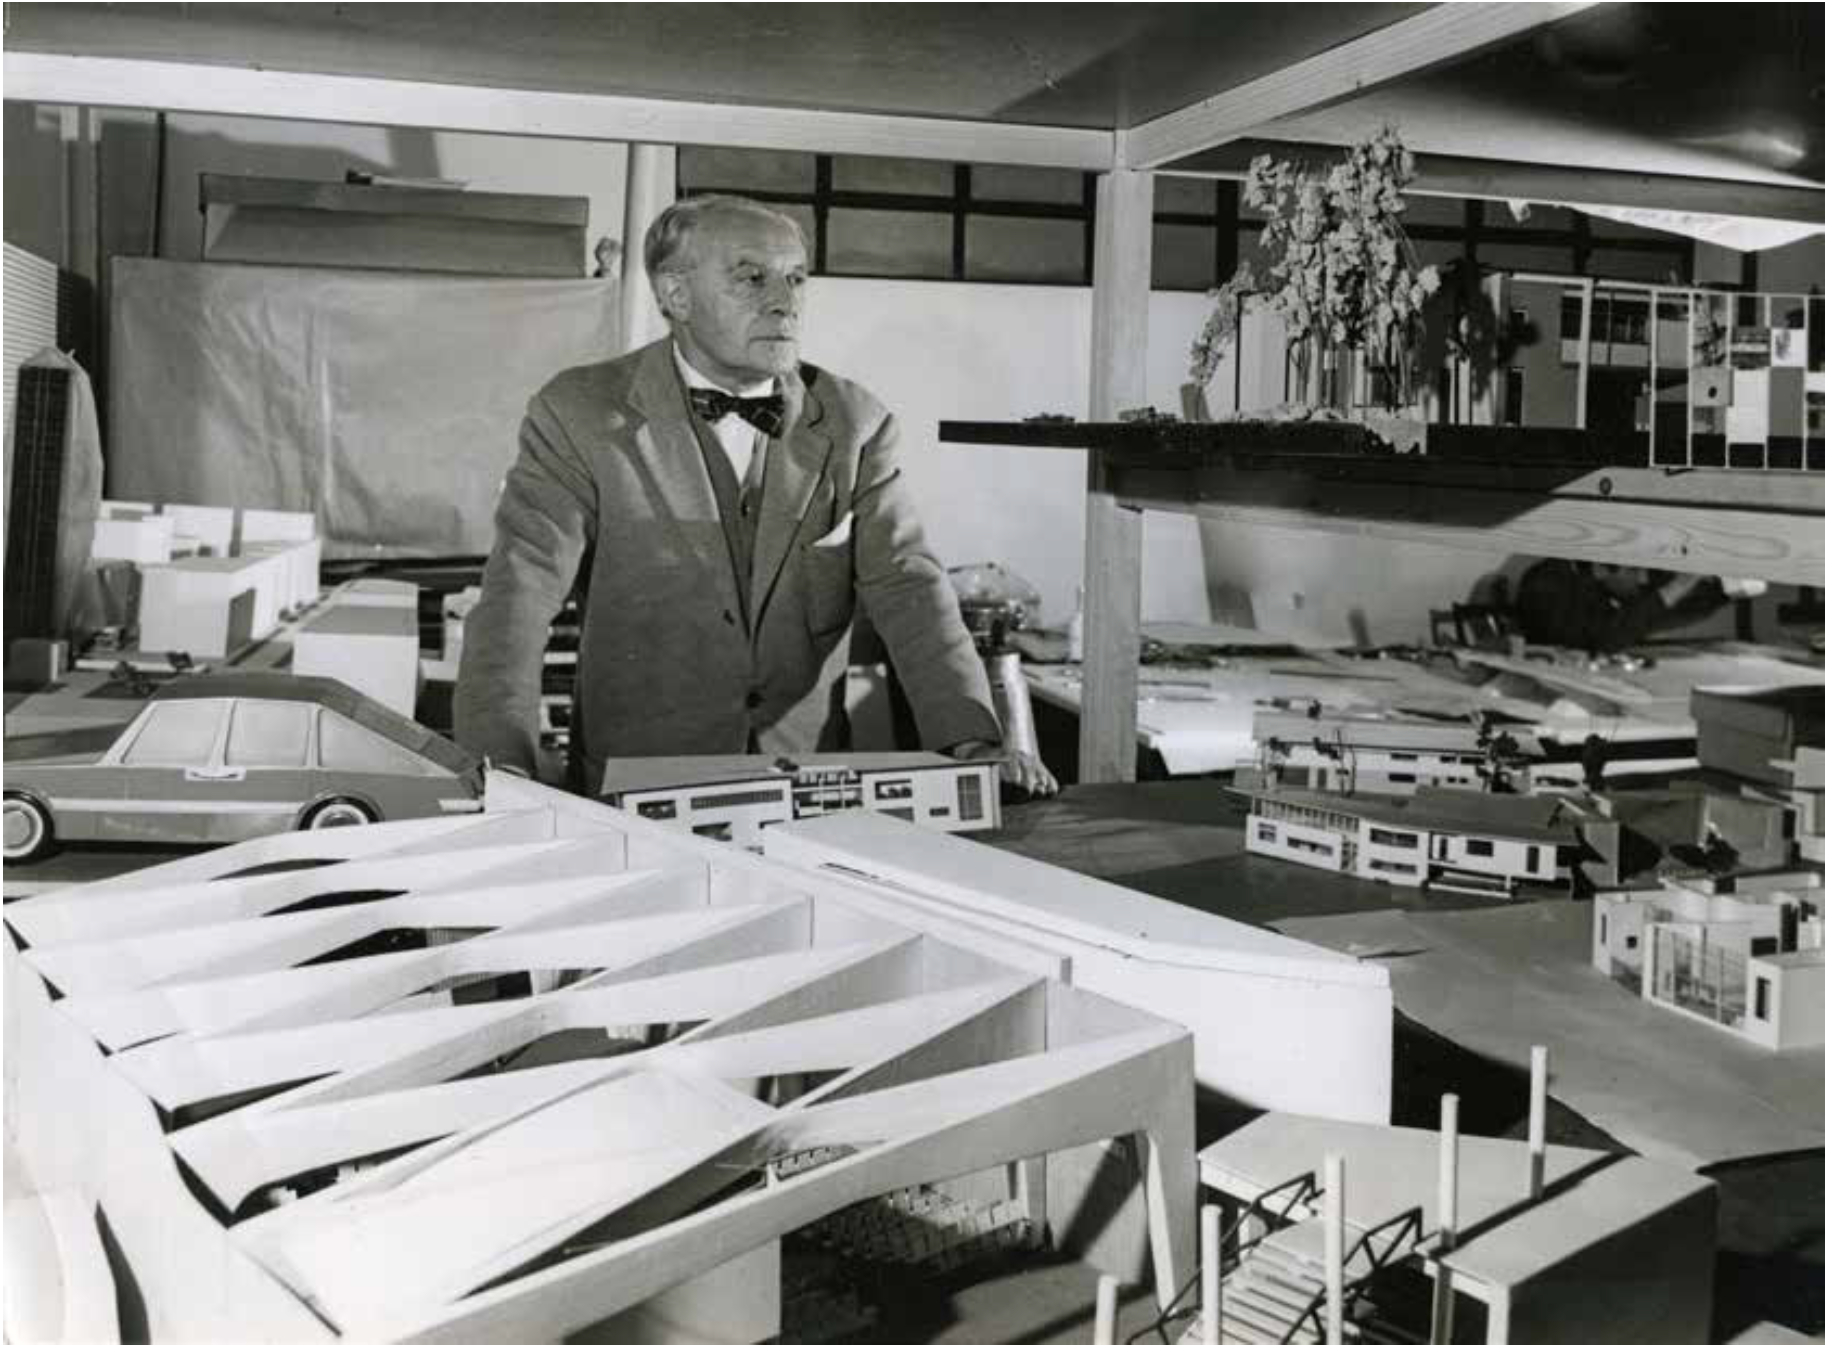 Giò Ponti in his studio, Via Dezza, Milan, 1950s. Courtesy:  Giò Ponti Archives .